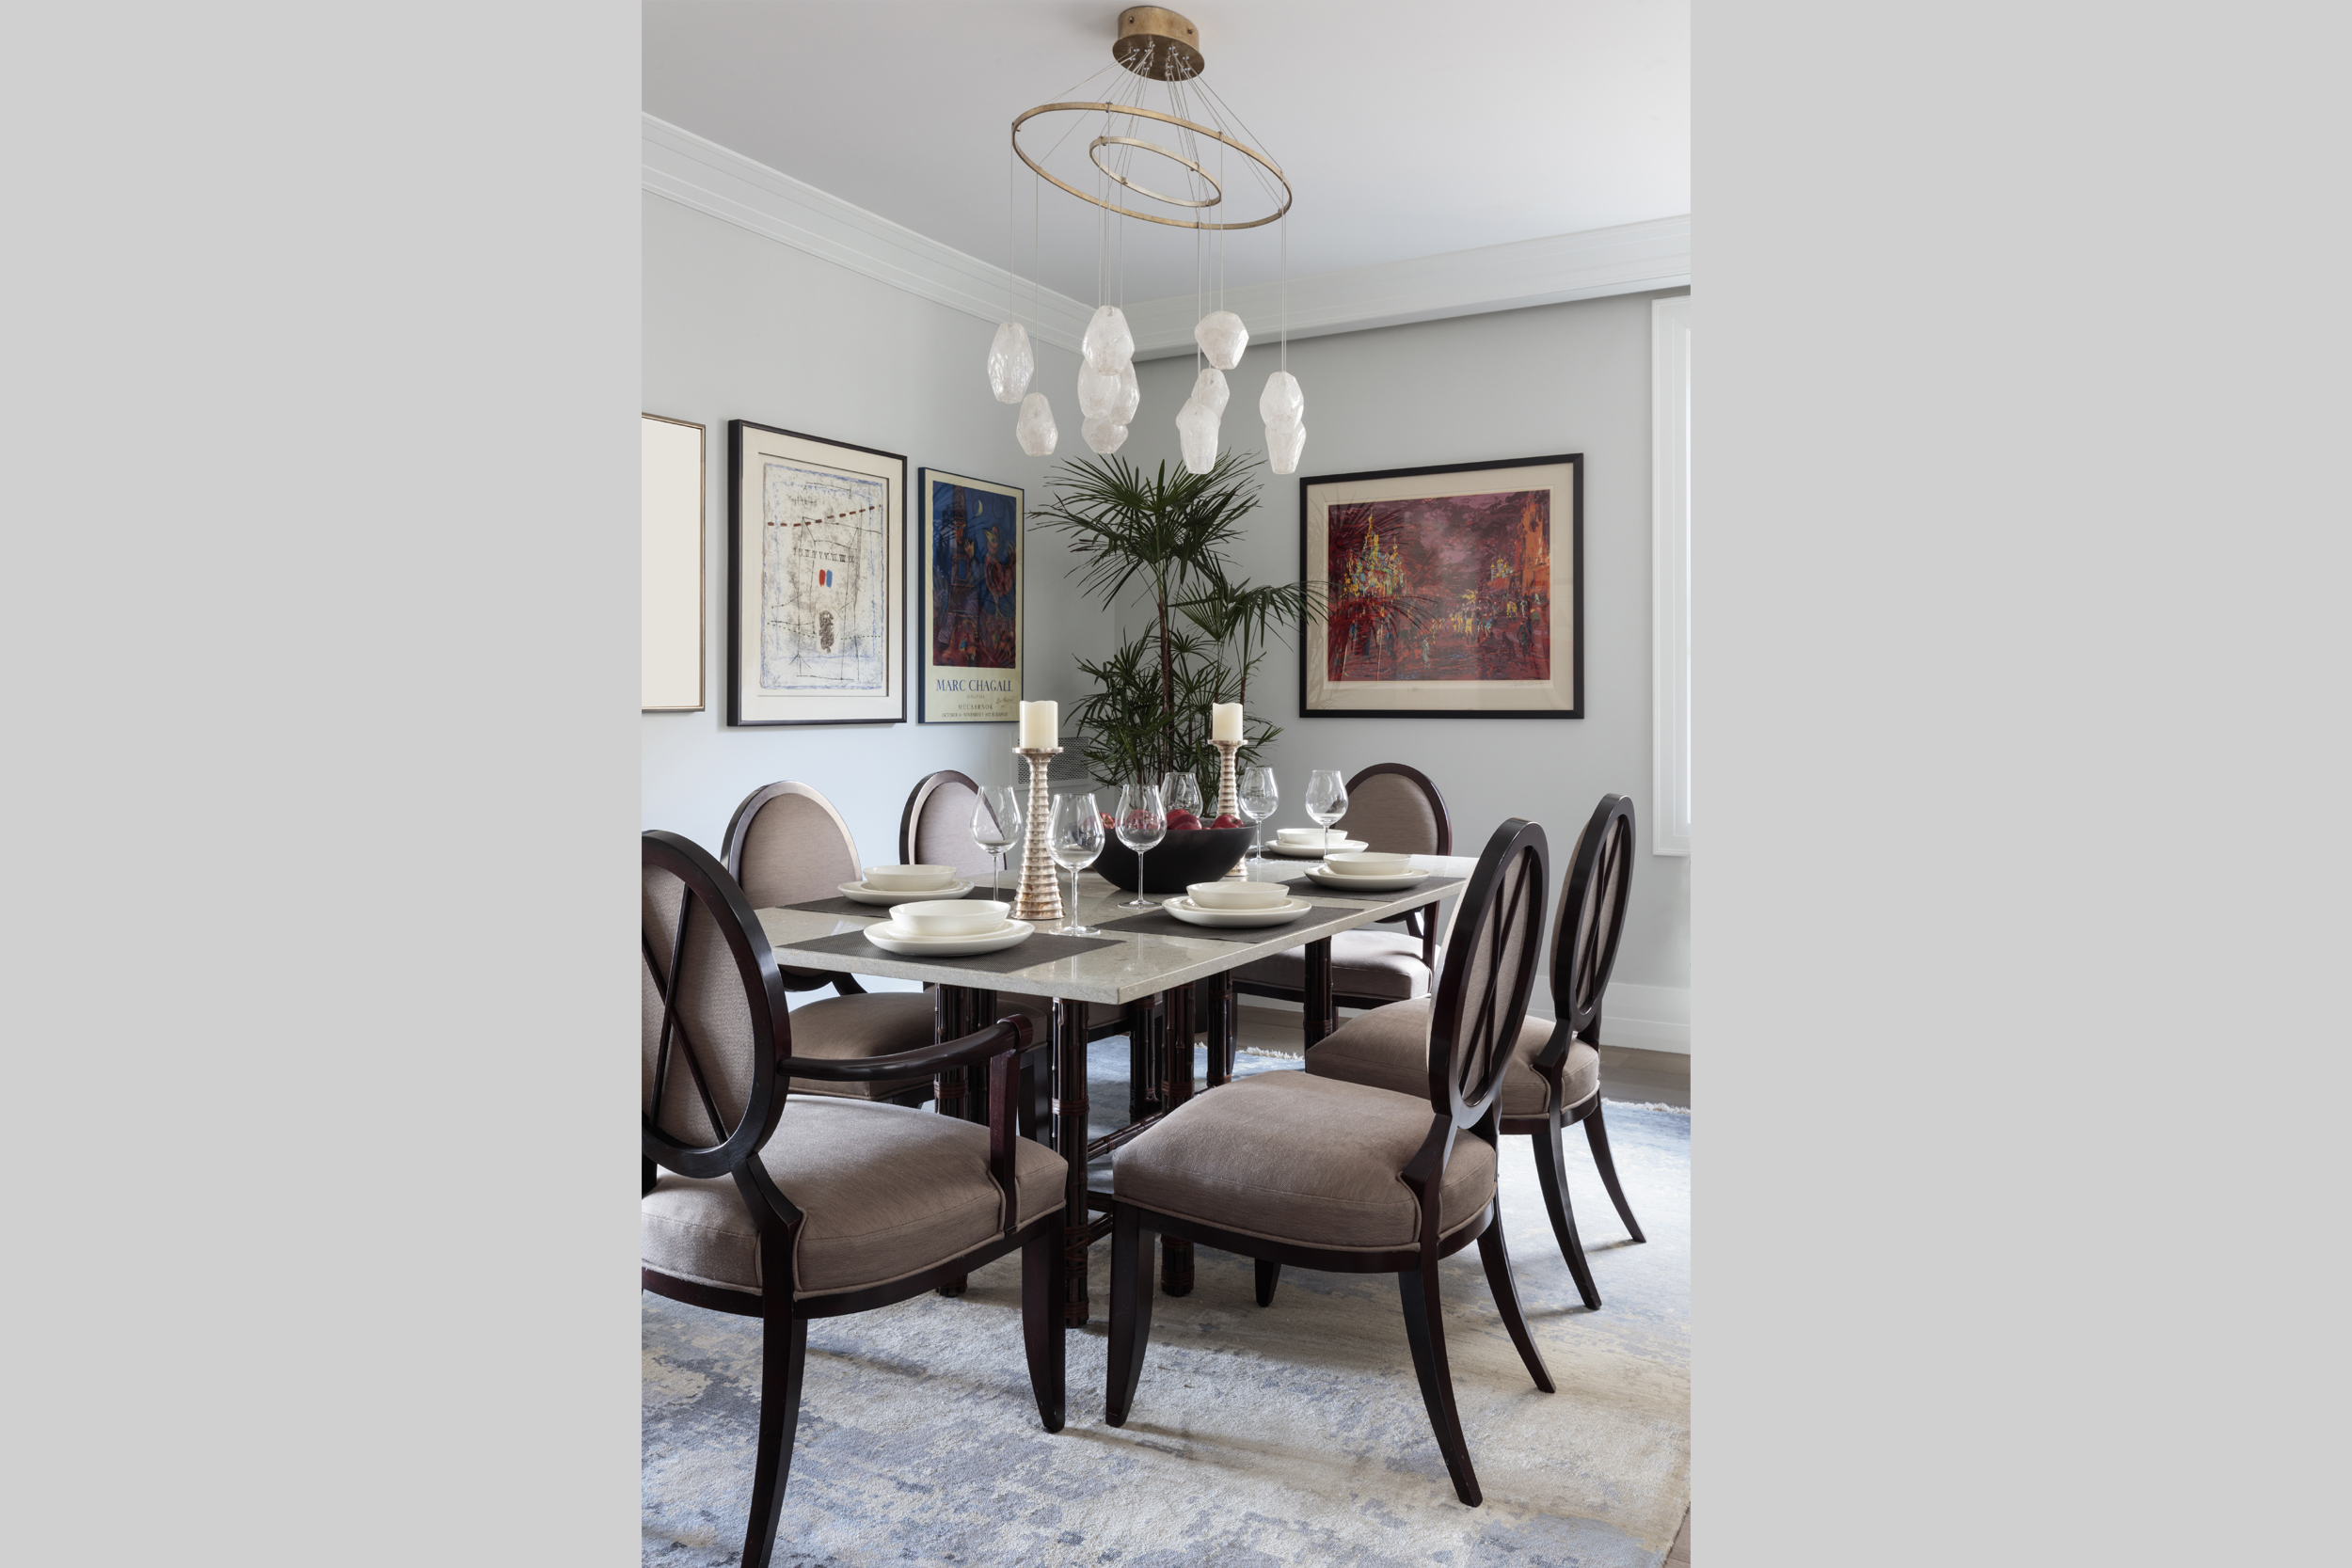 DESIGN415 | San Francisco Pacific Heights Dining Room Interior Design